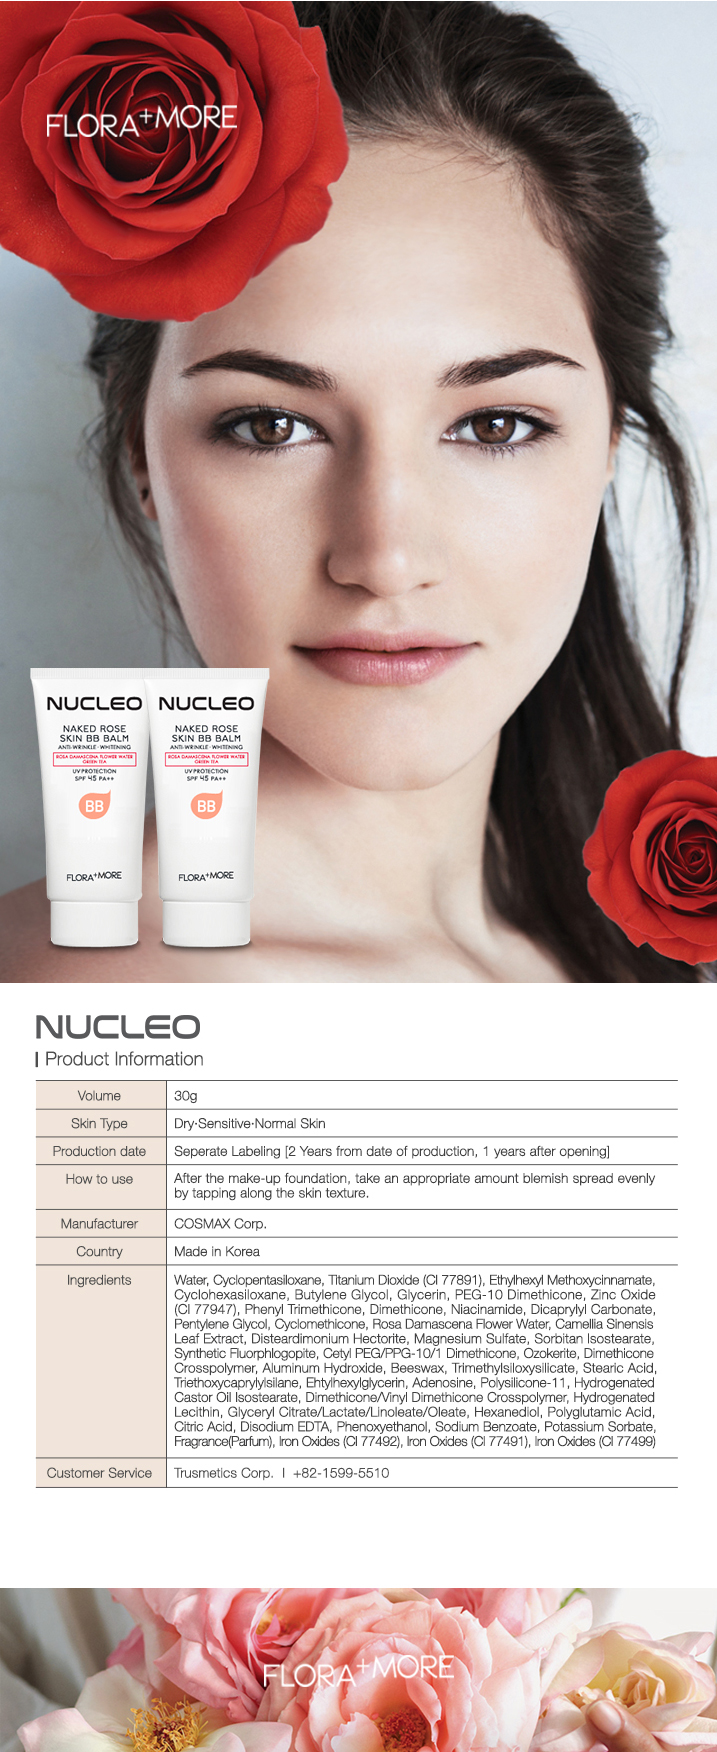 Chicco Baby Japan Made In Korea Nucelo Flora More Naked Rose Skin Bb Balm